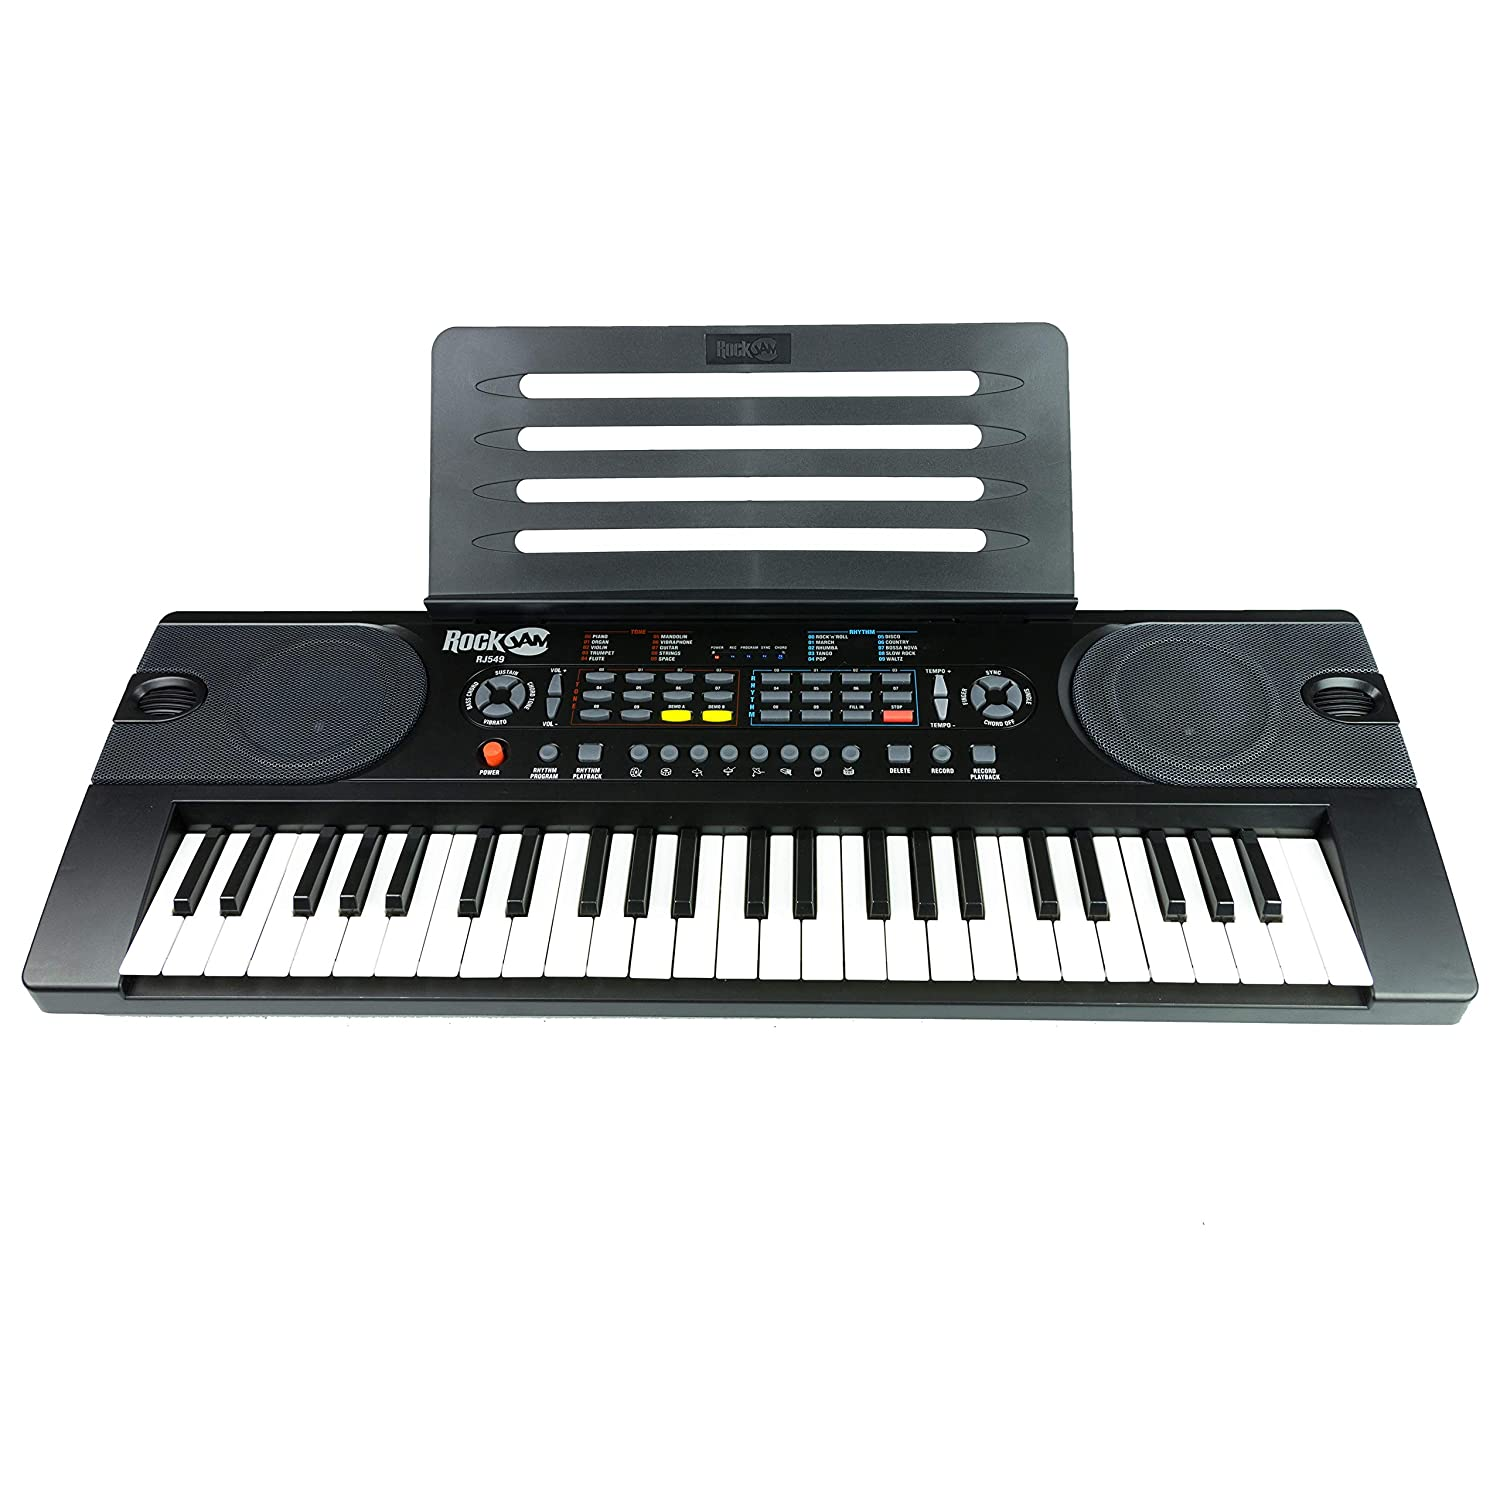 RockJam 49-Key Portable Keyboard (RJ549)